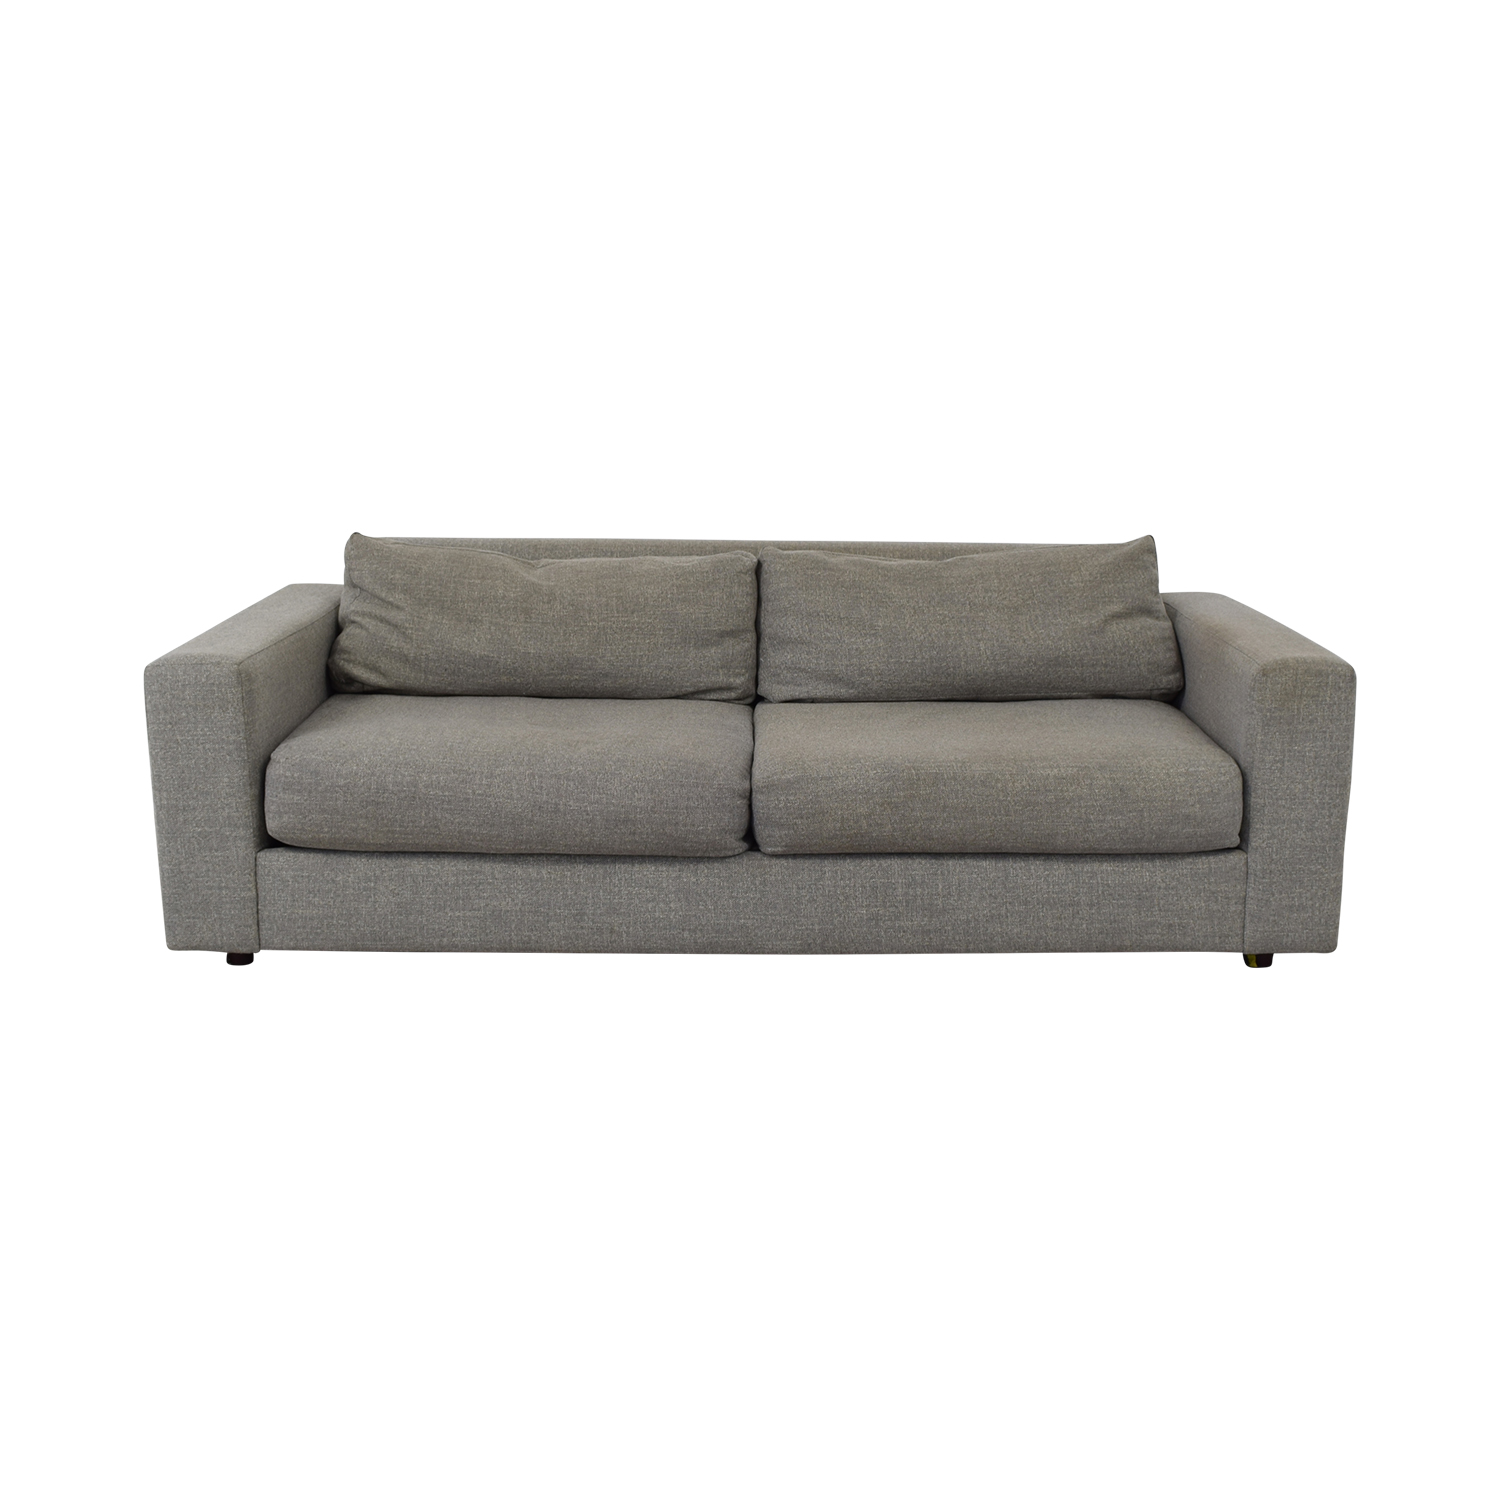 West Elm West Elm Urban Sofa on sale